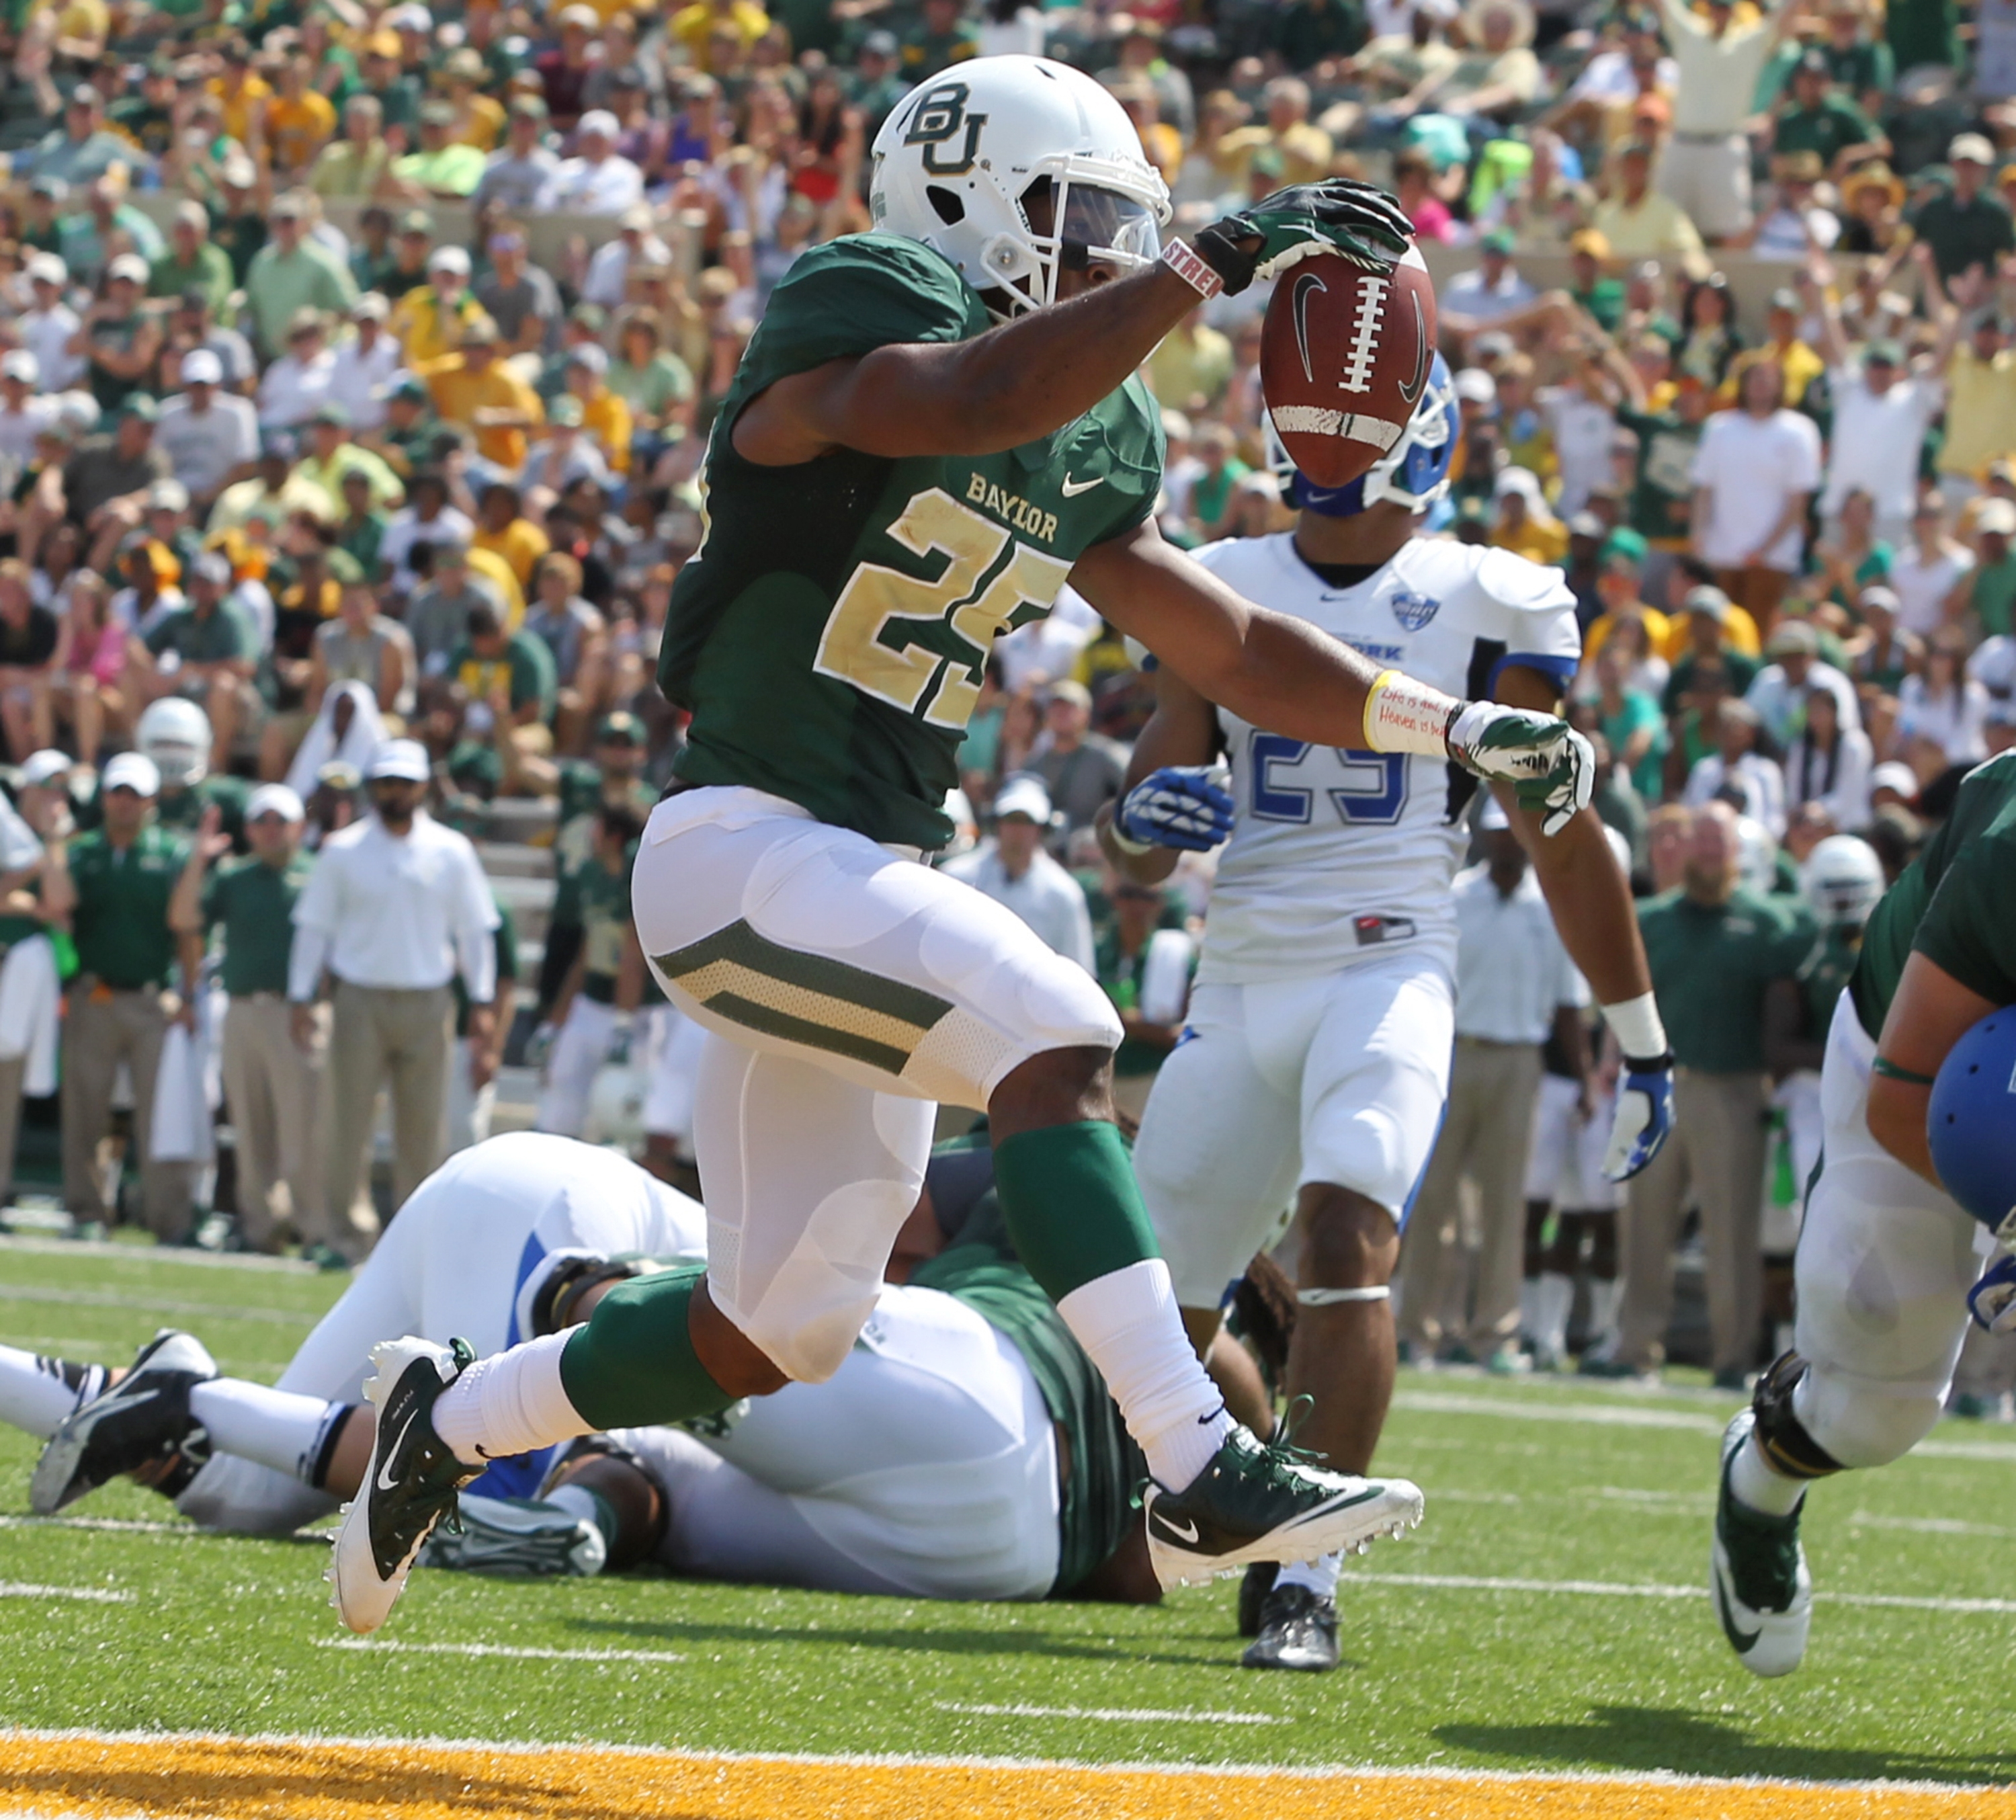 Baylor running back Lache Seastrunk celebrates one of his three first-half touchdowns against UB.